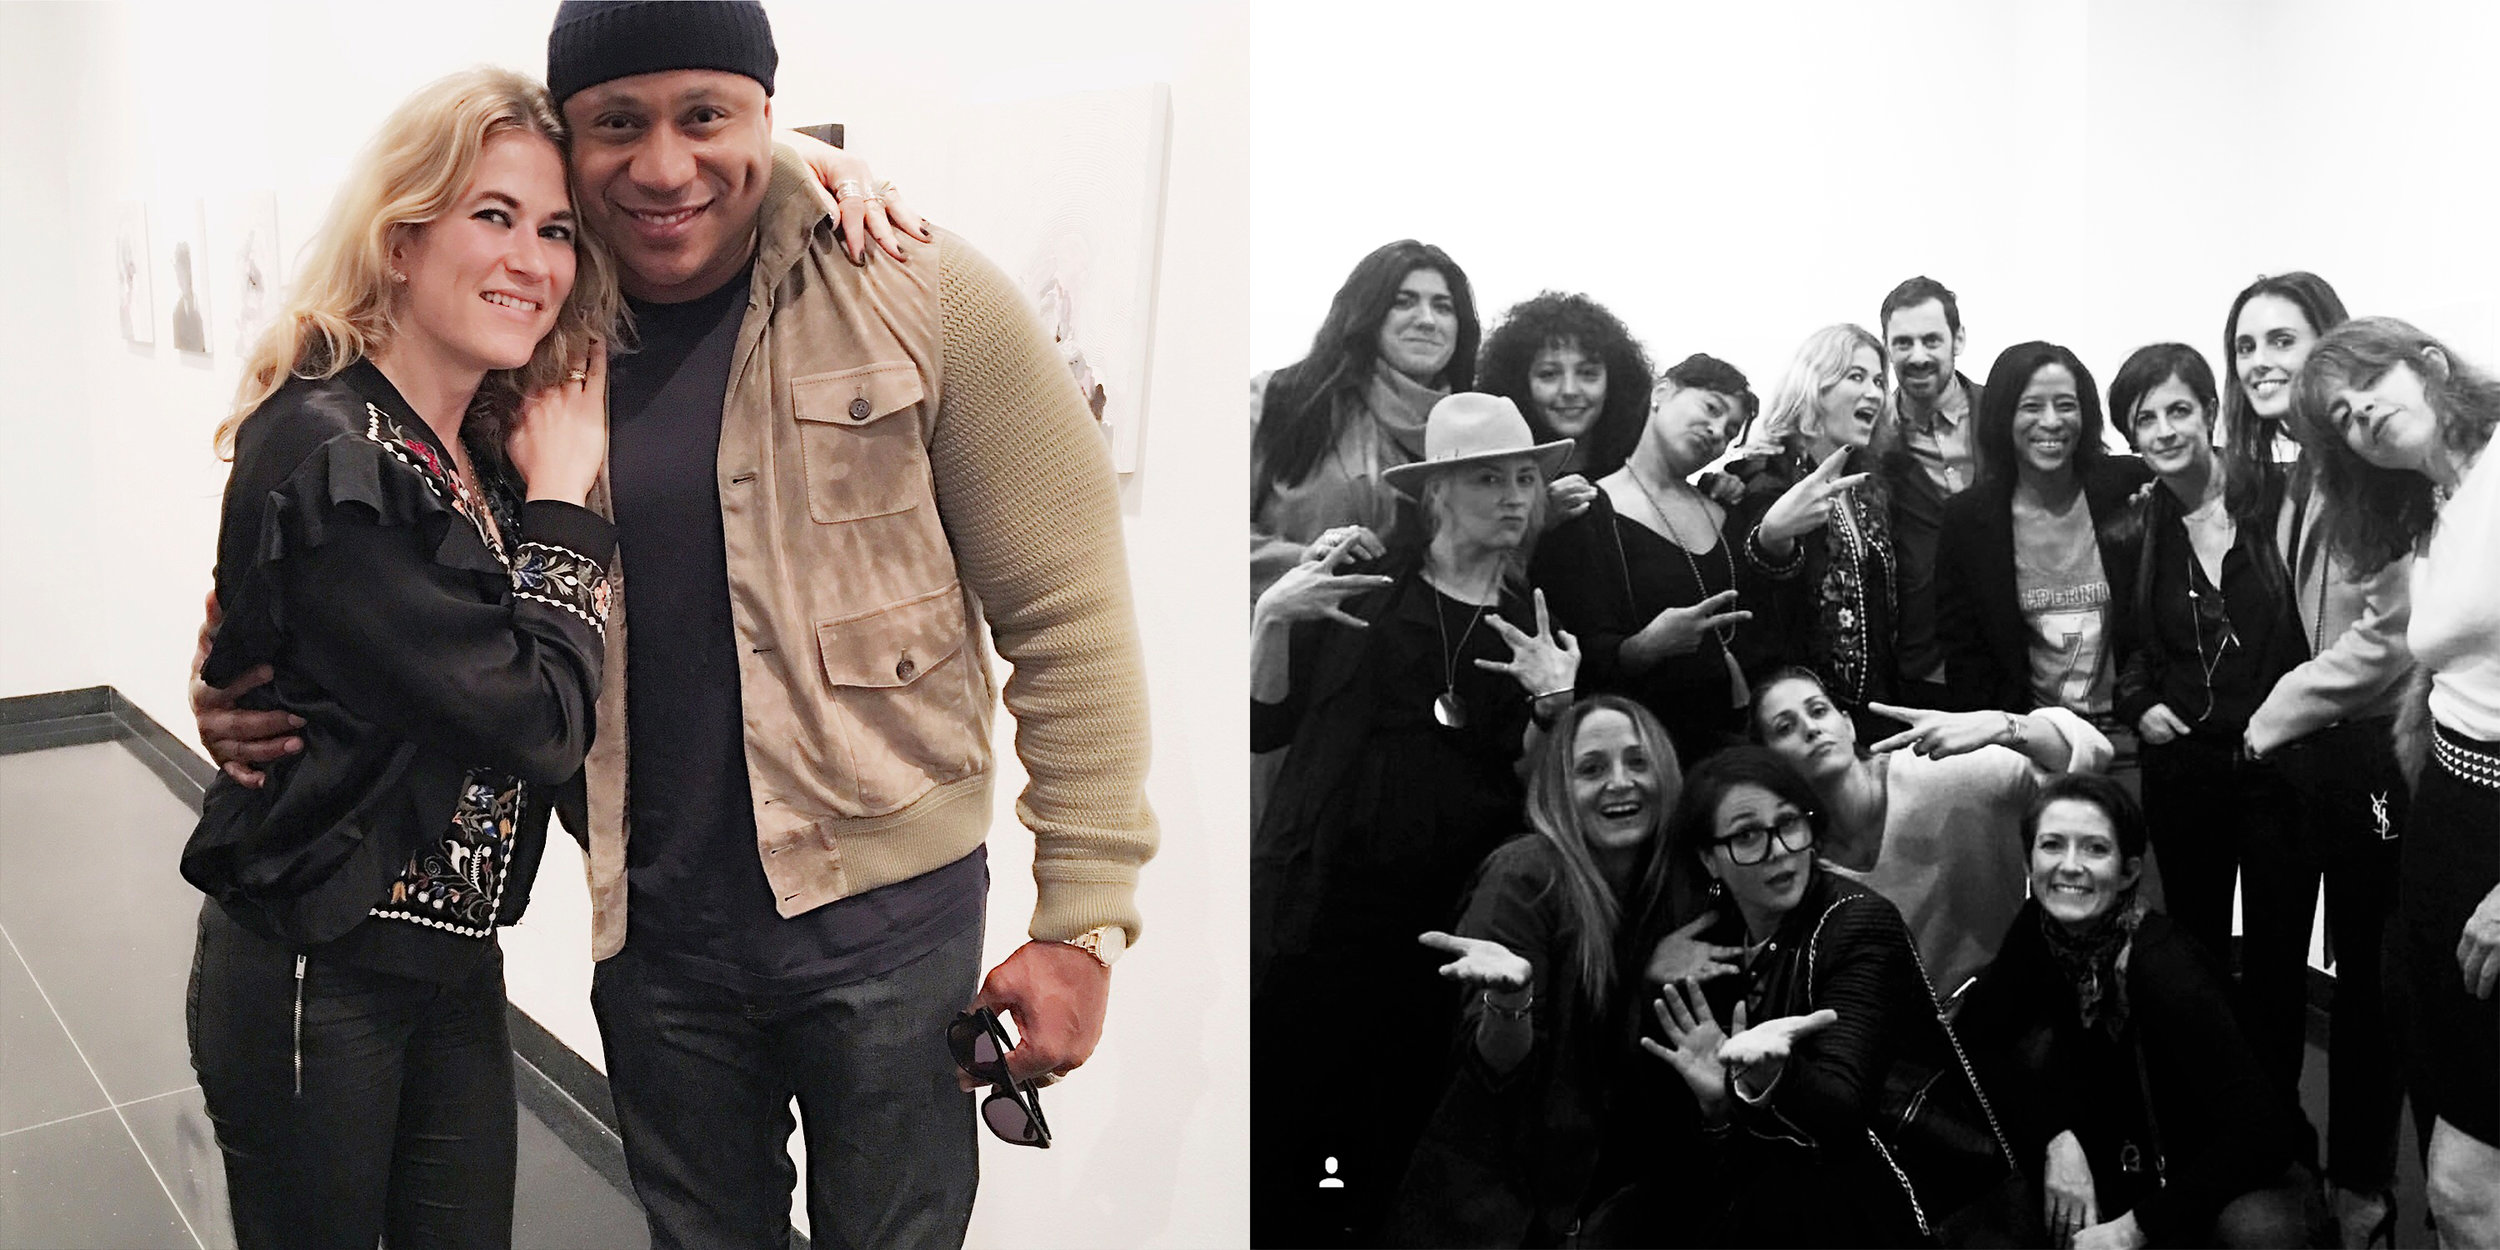 Artist Amelie Chabannes with guests, including LL Cool J.